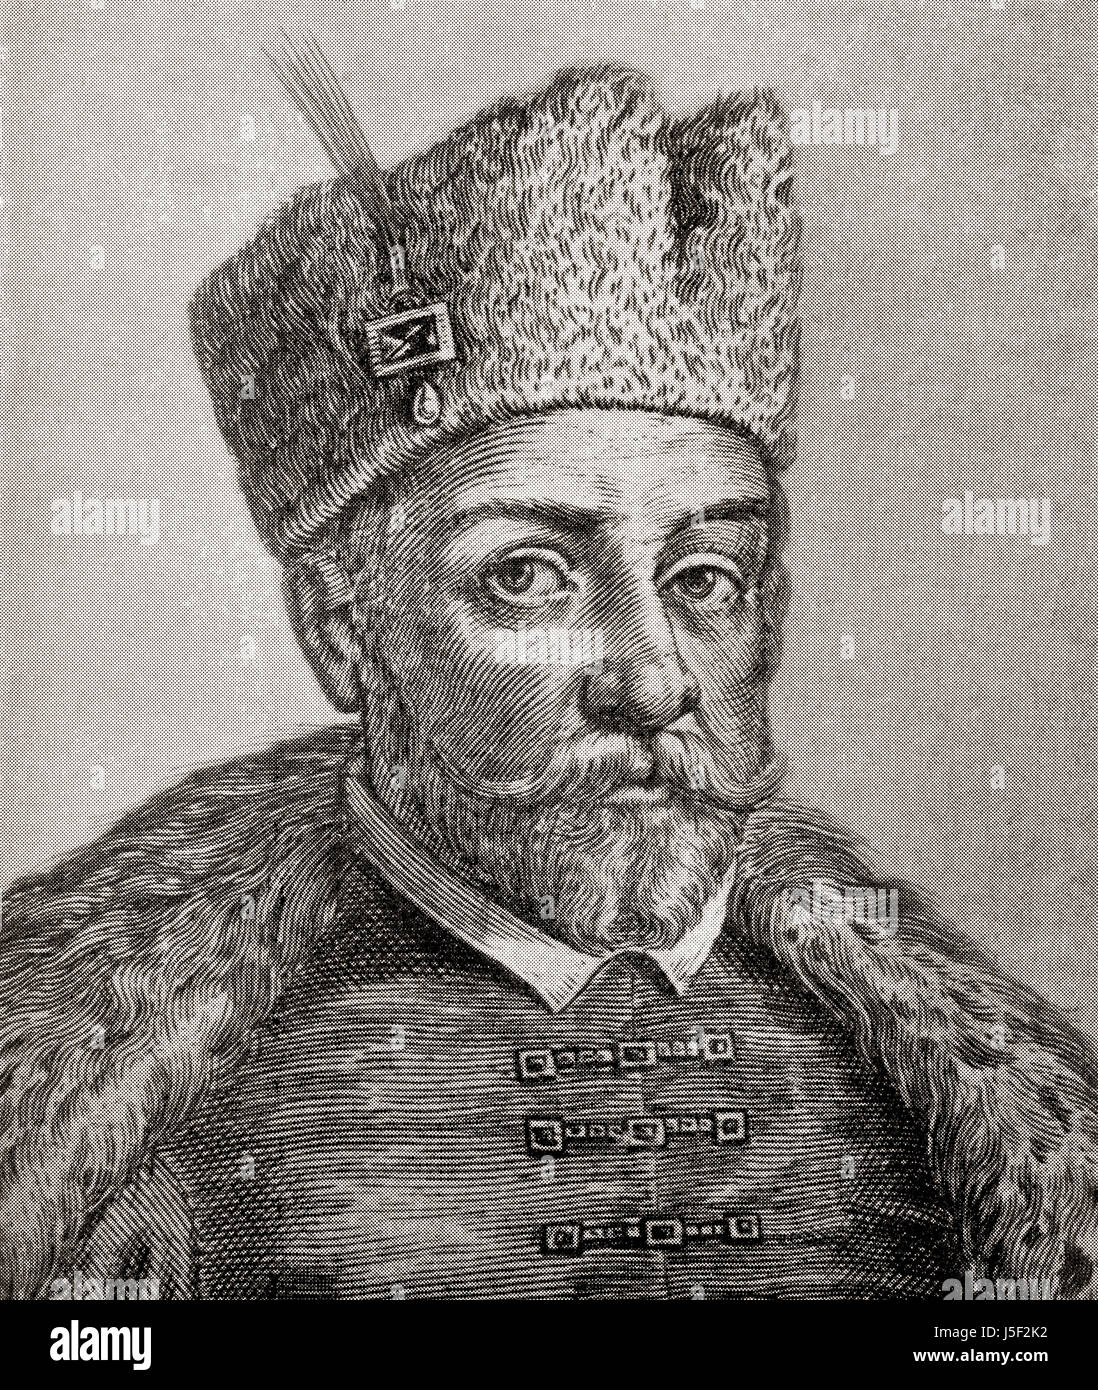 a biography of ivan the terrible a russian tsar Ivan the terrible, russian ivan grozny, russian in full ivan vasilyevich, also called ivan iv, (born august 25, 1530, kolomenskoye, near moscow [russia]—died march 18, 1584, moscow), grand prince of moscow (1533-84) and the first to be proclaimed tsar of russia (from 1547.